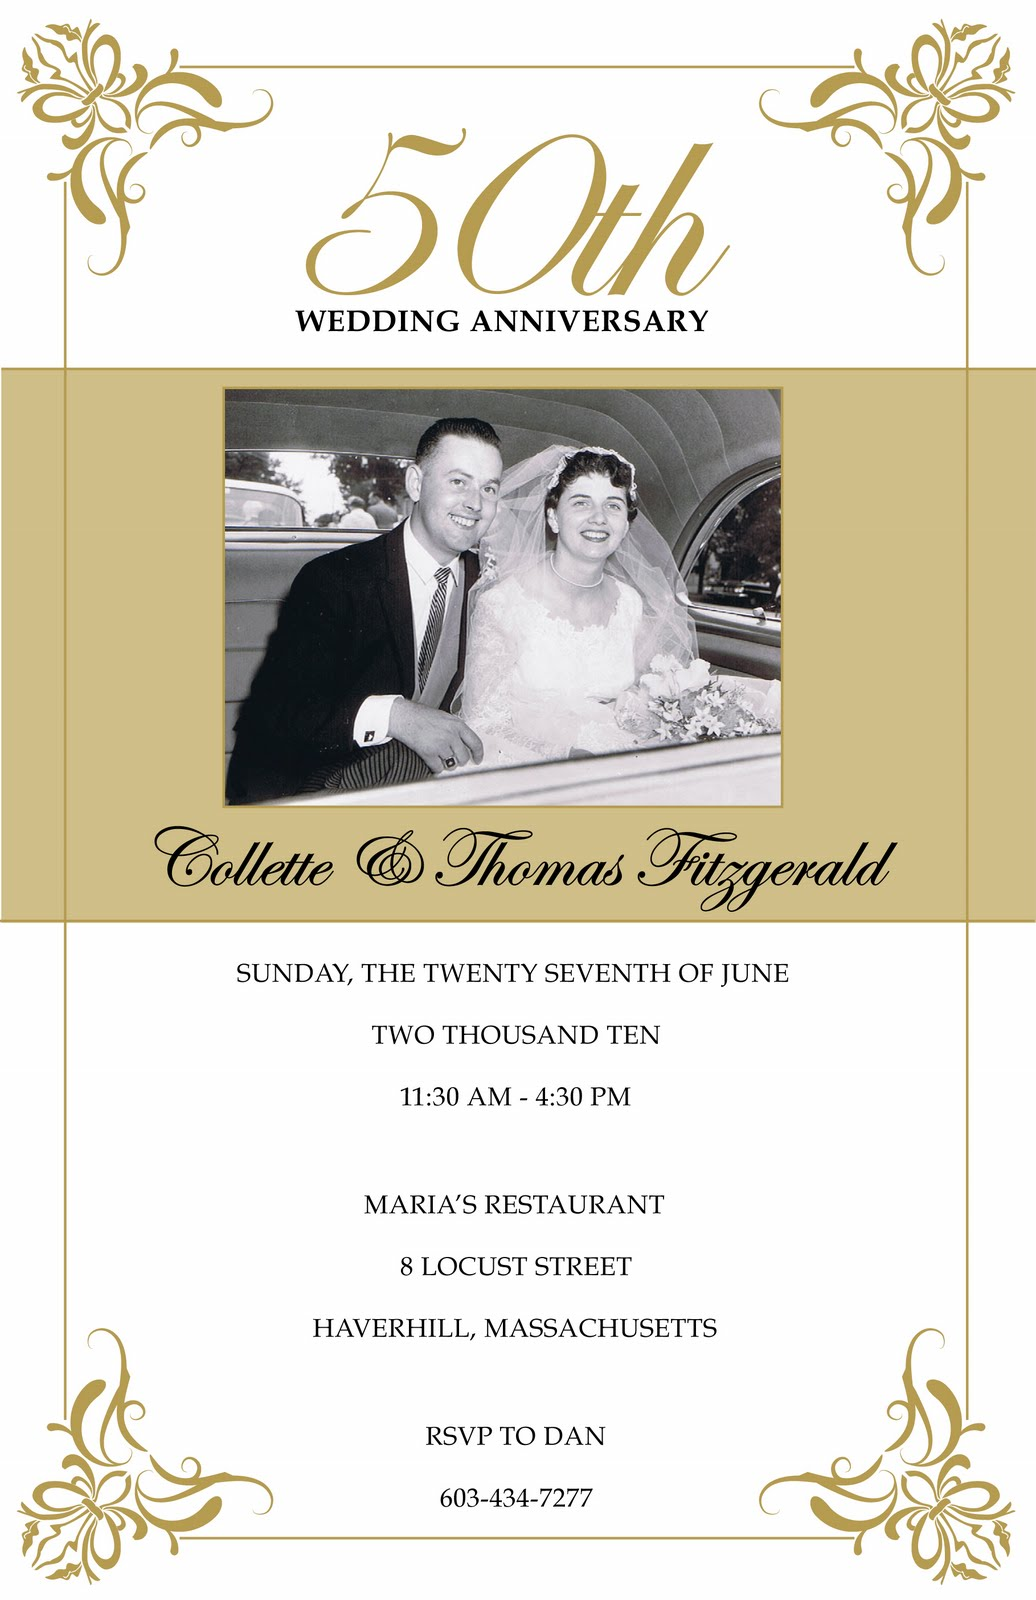 Annagraham design 50th anniversary - Wedding anniversary invitations ...